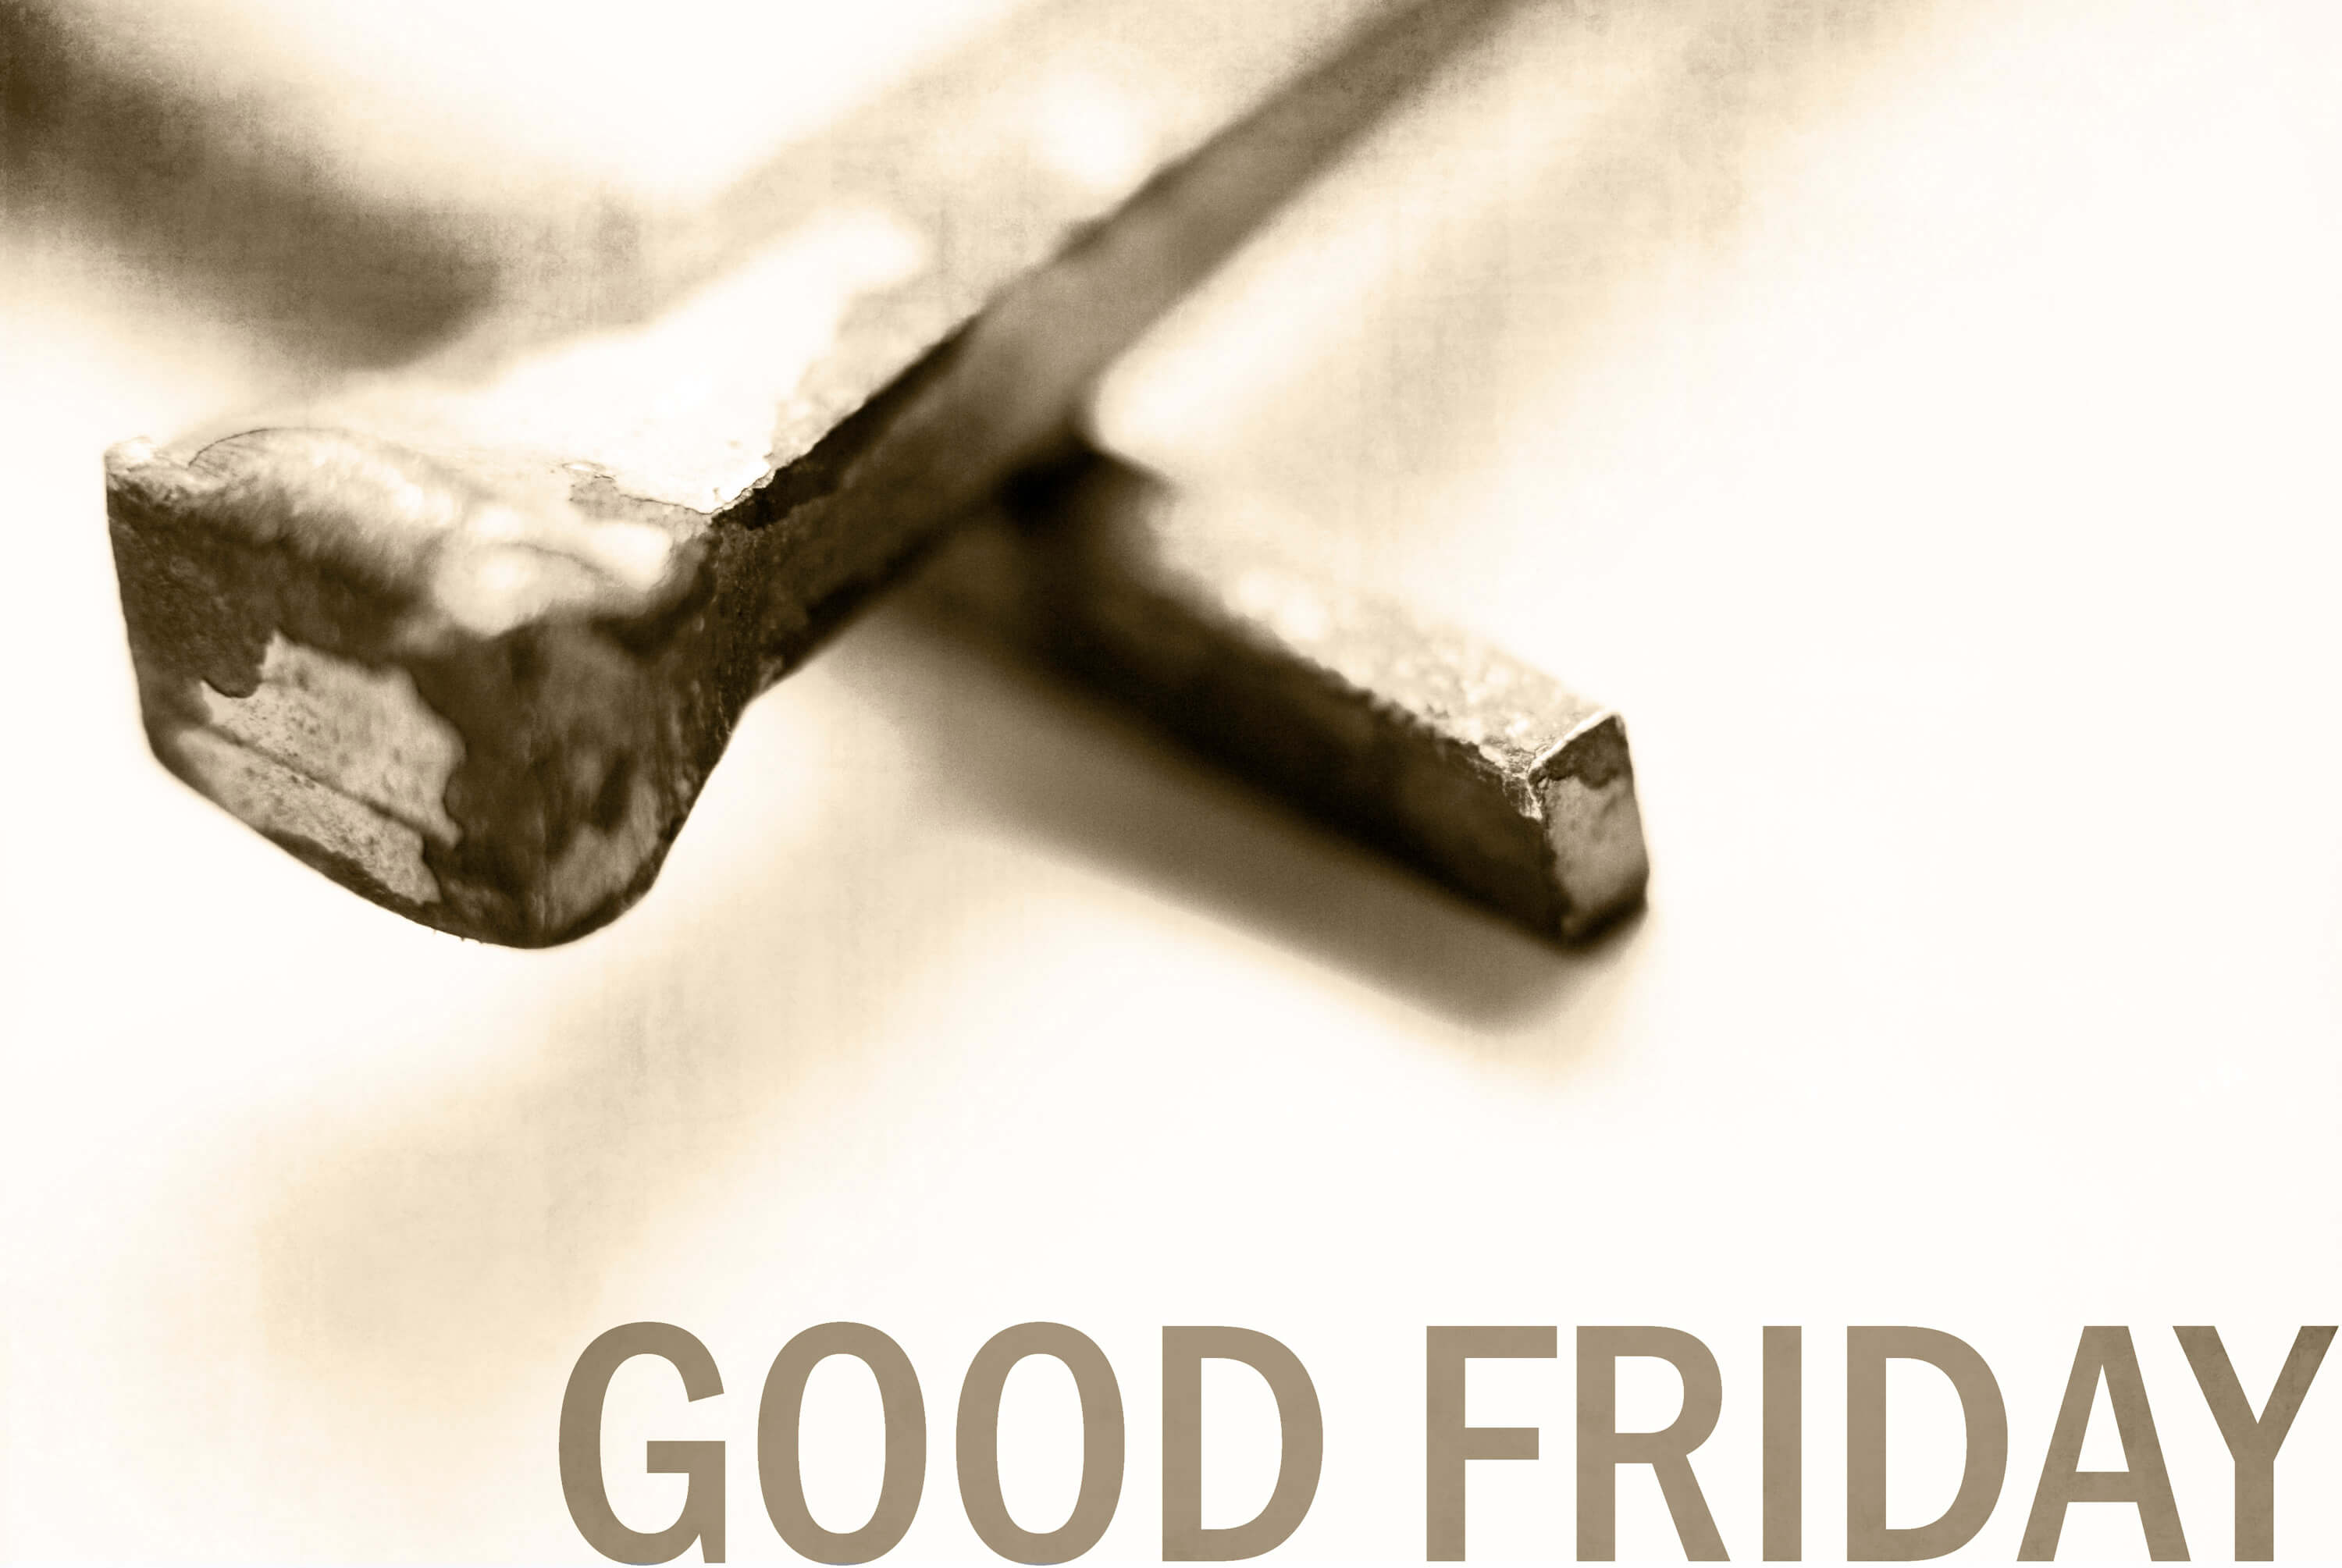 good friday wallpaper image desktop